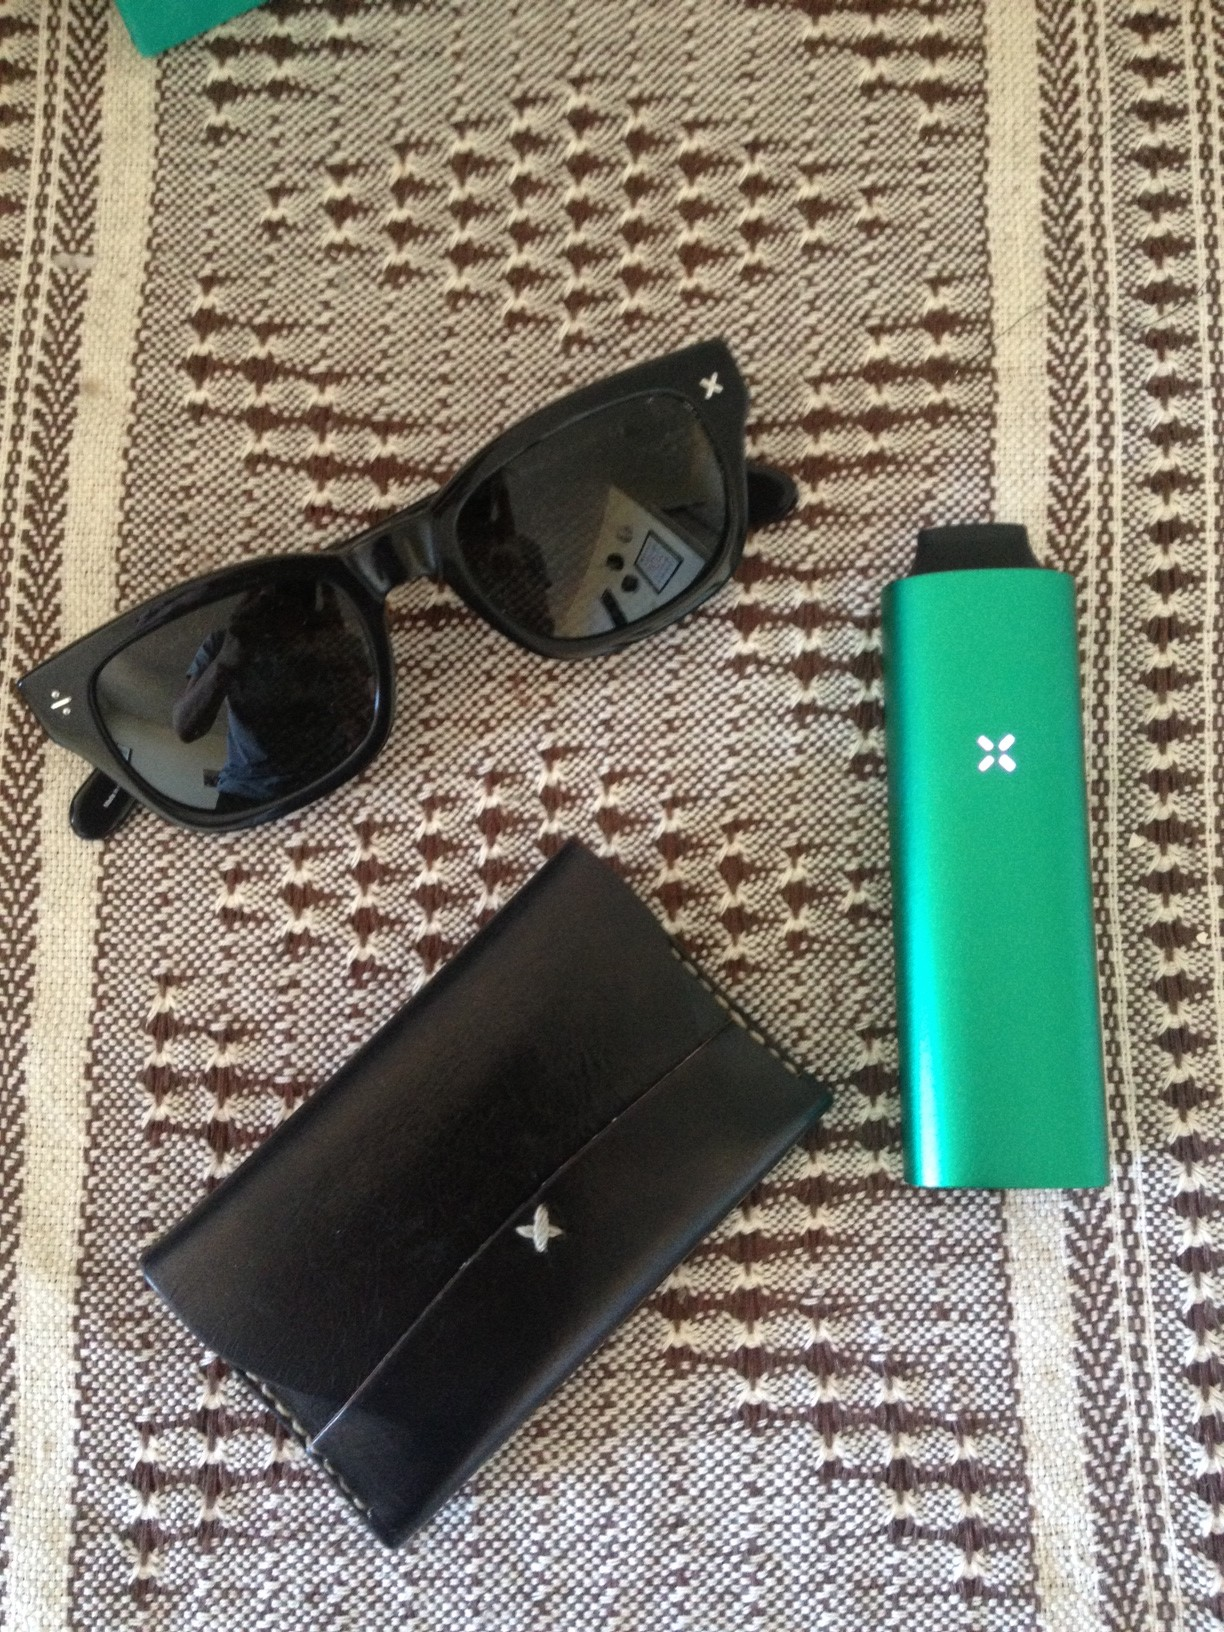 photo5 e1387218933316 Review: Pax by Ploom Vaporizer